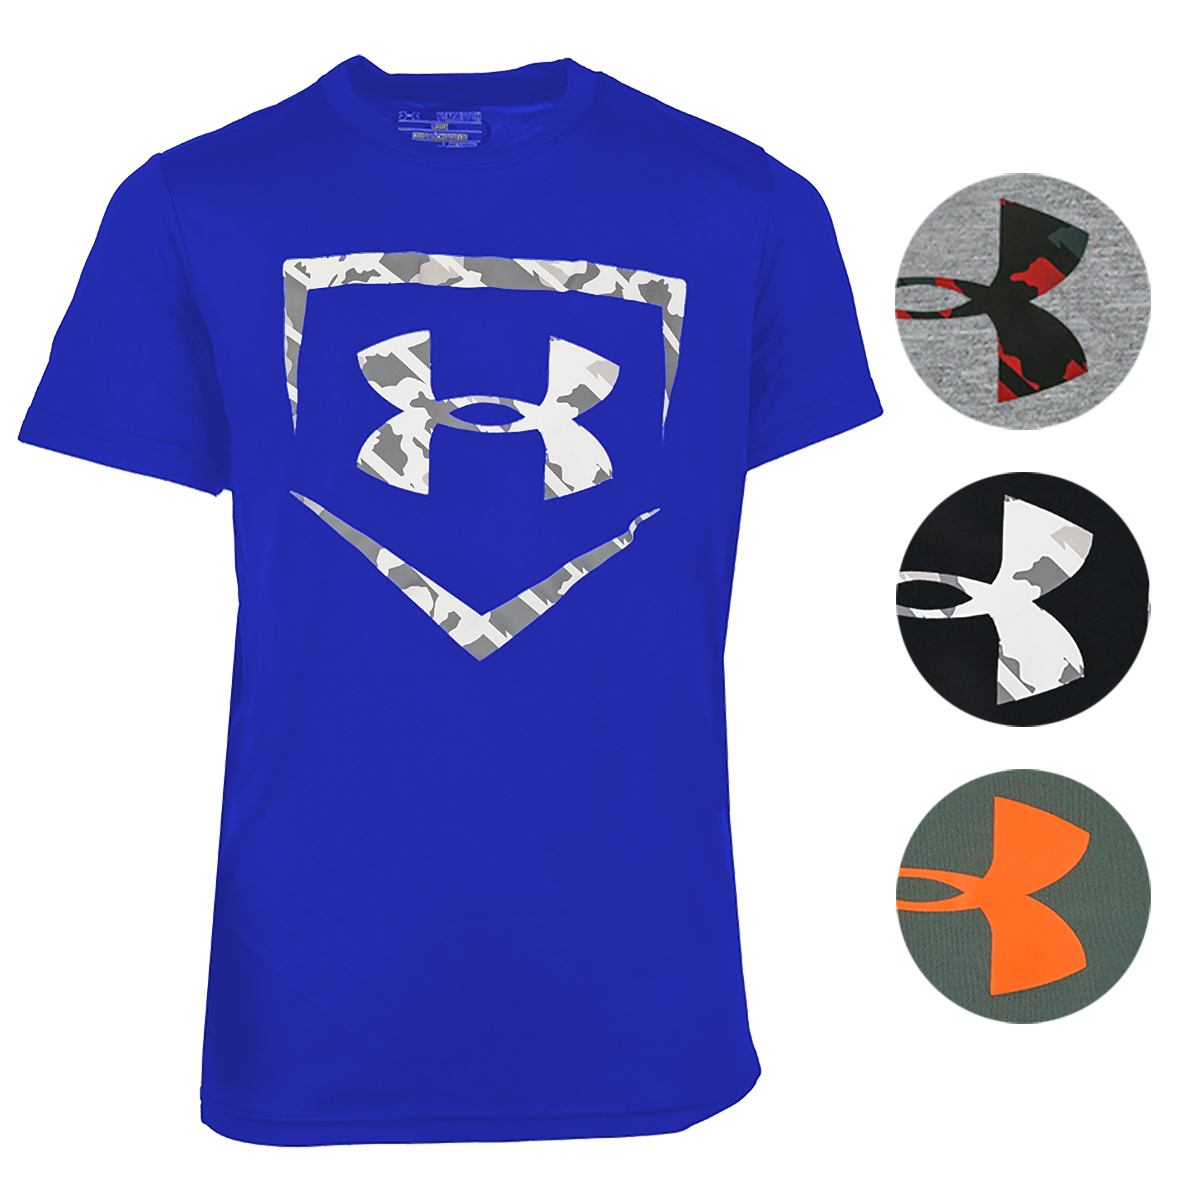 97703684a Details about Under Armour Boys' UA Tech Home Plate Short Sleeve T-Shirt